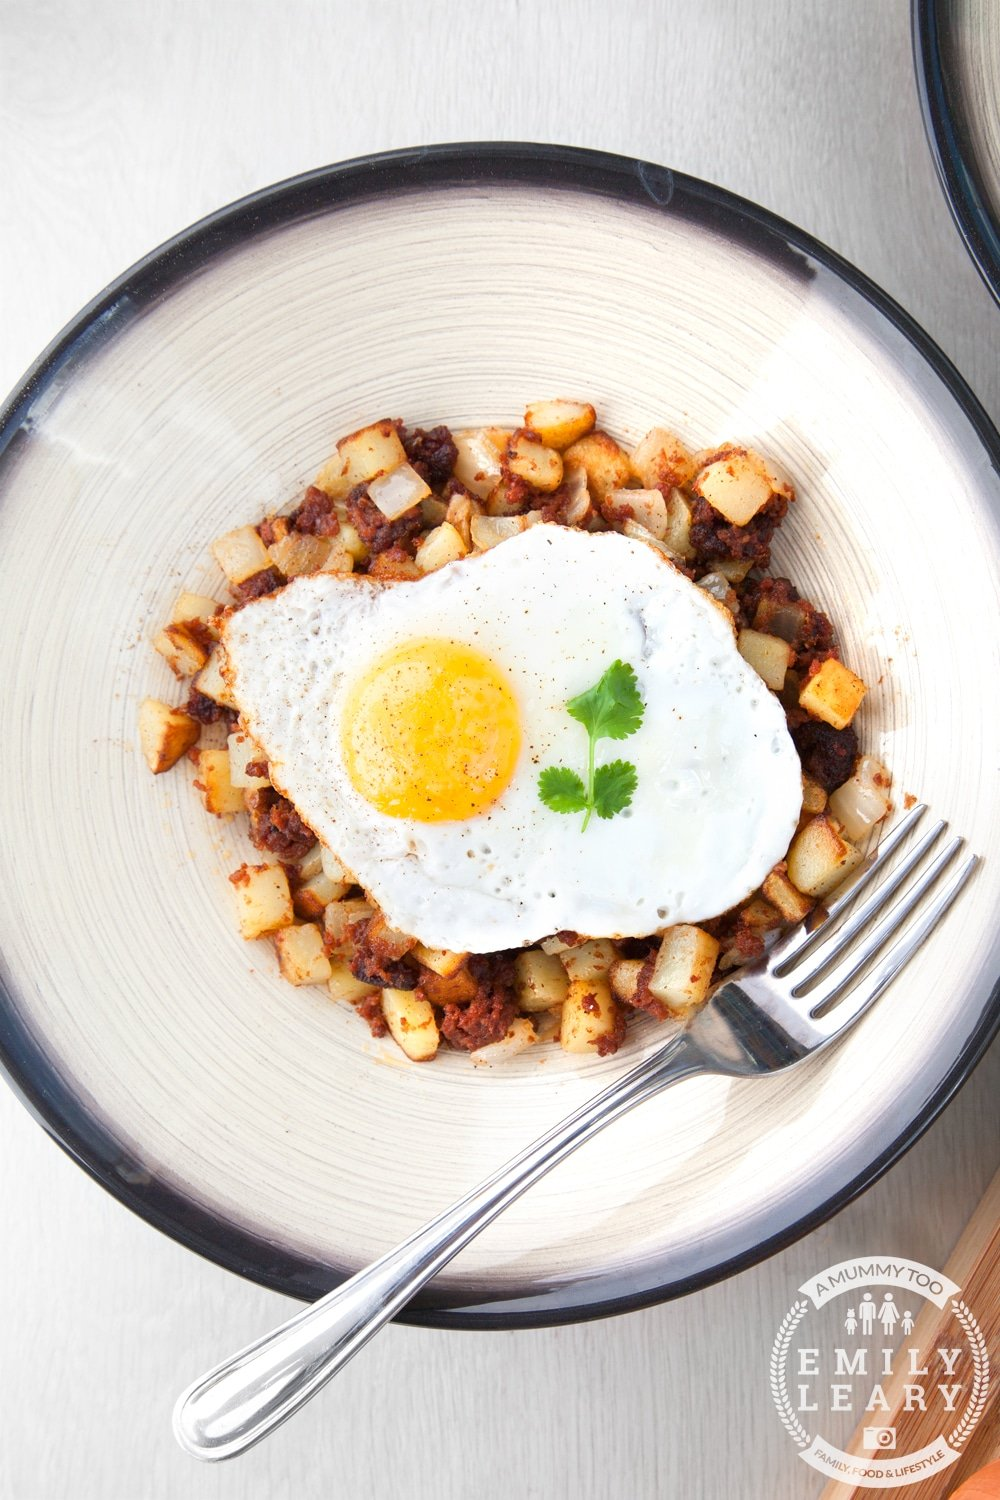 Chilli corned beef hash! Spice up your lunchtime with this twist on a classic dish. It's easy to make and utterly delicious.